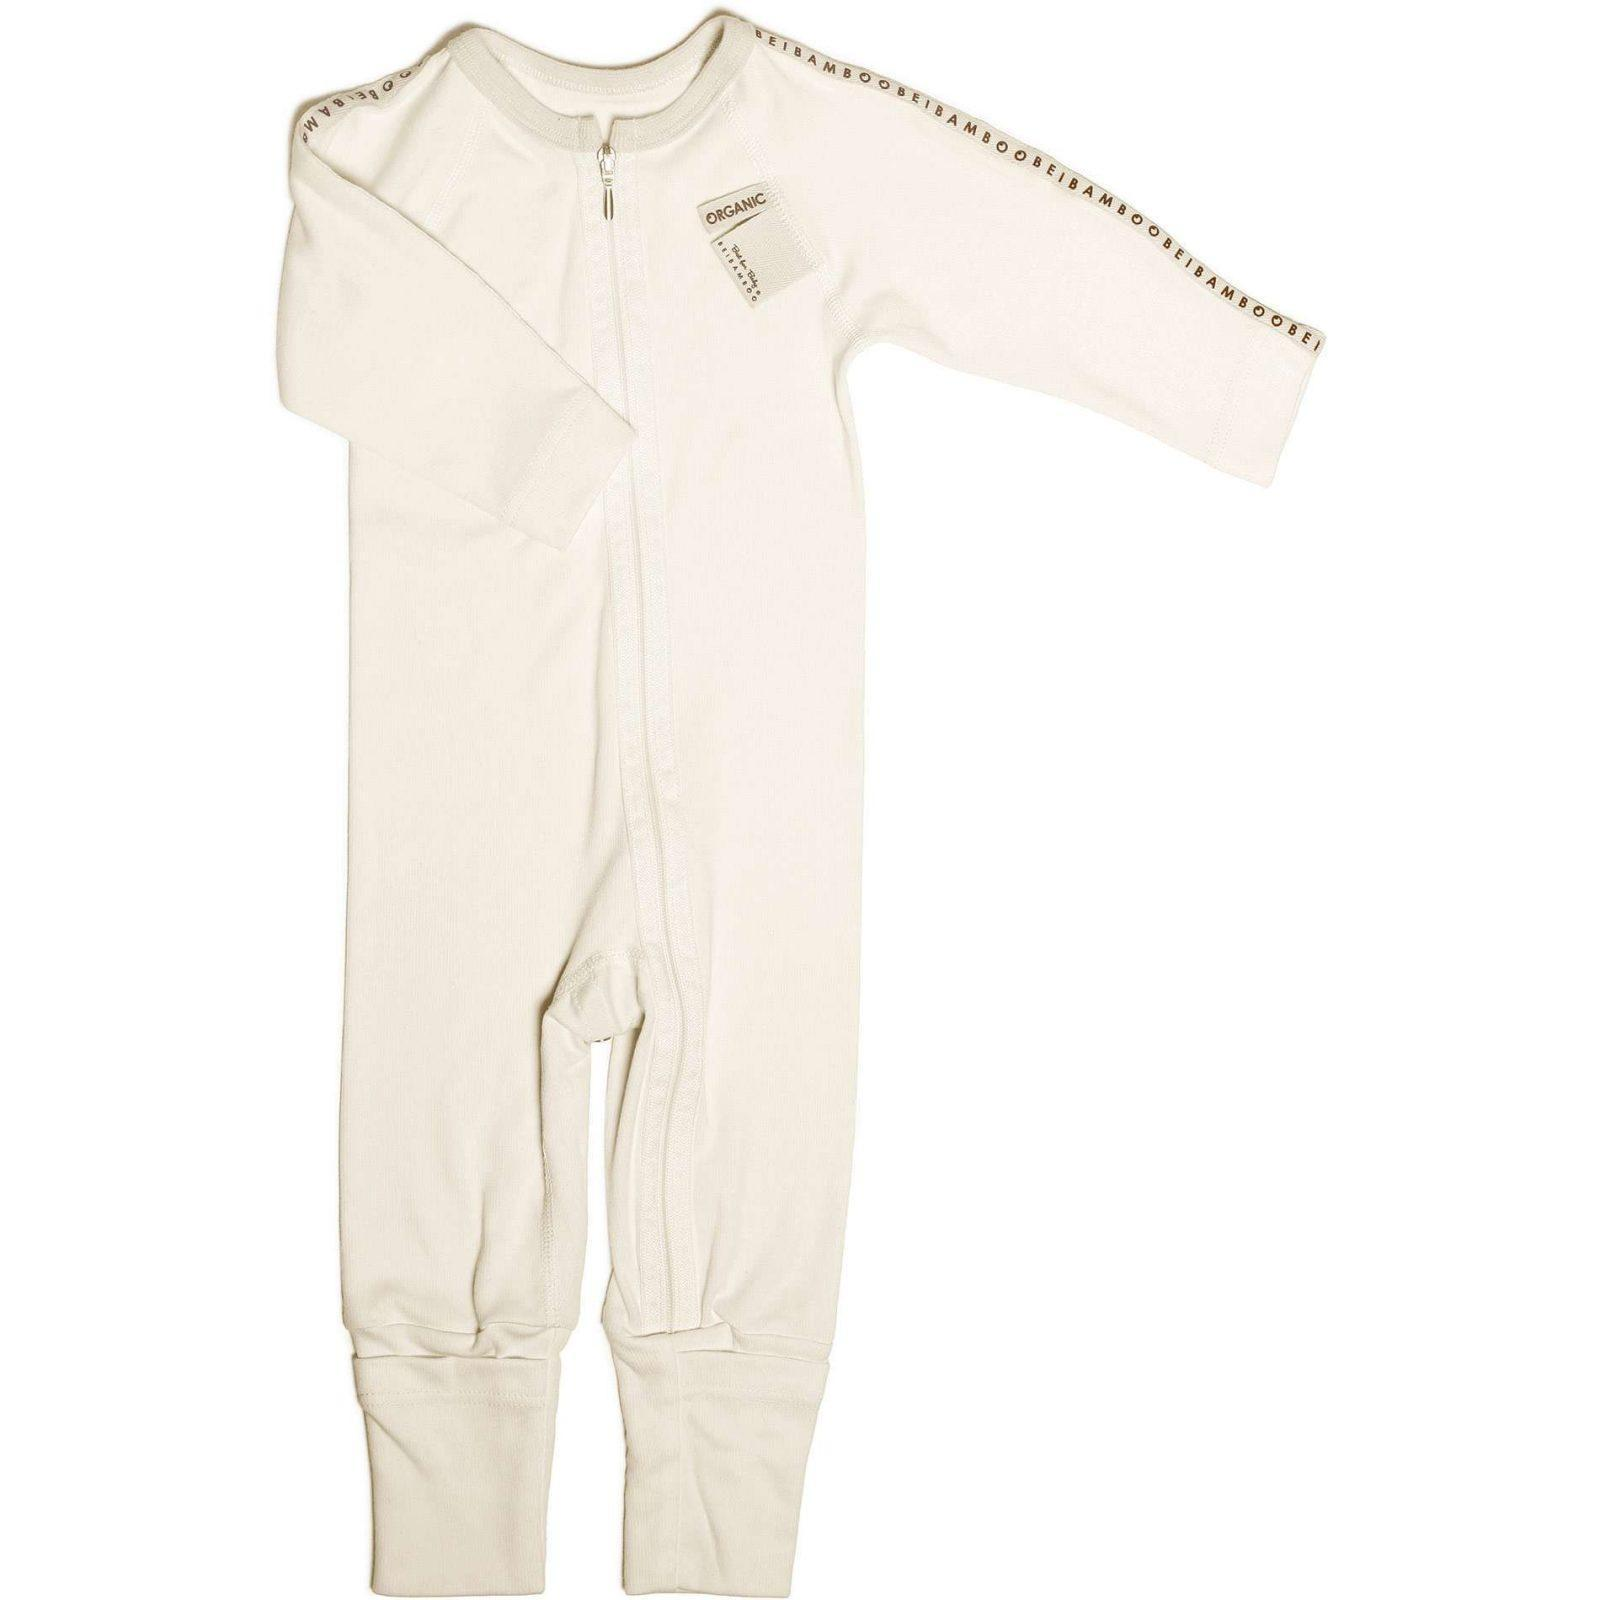 baby jumpsuit with zip, soft bamboo jersey organic cotton.